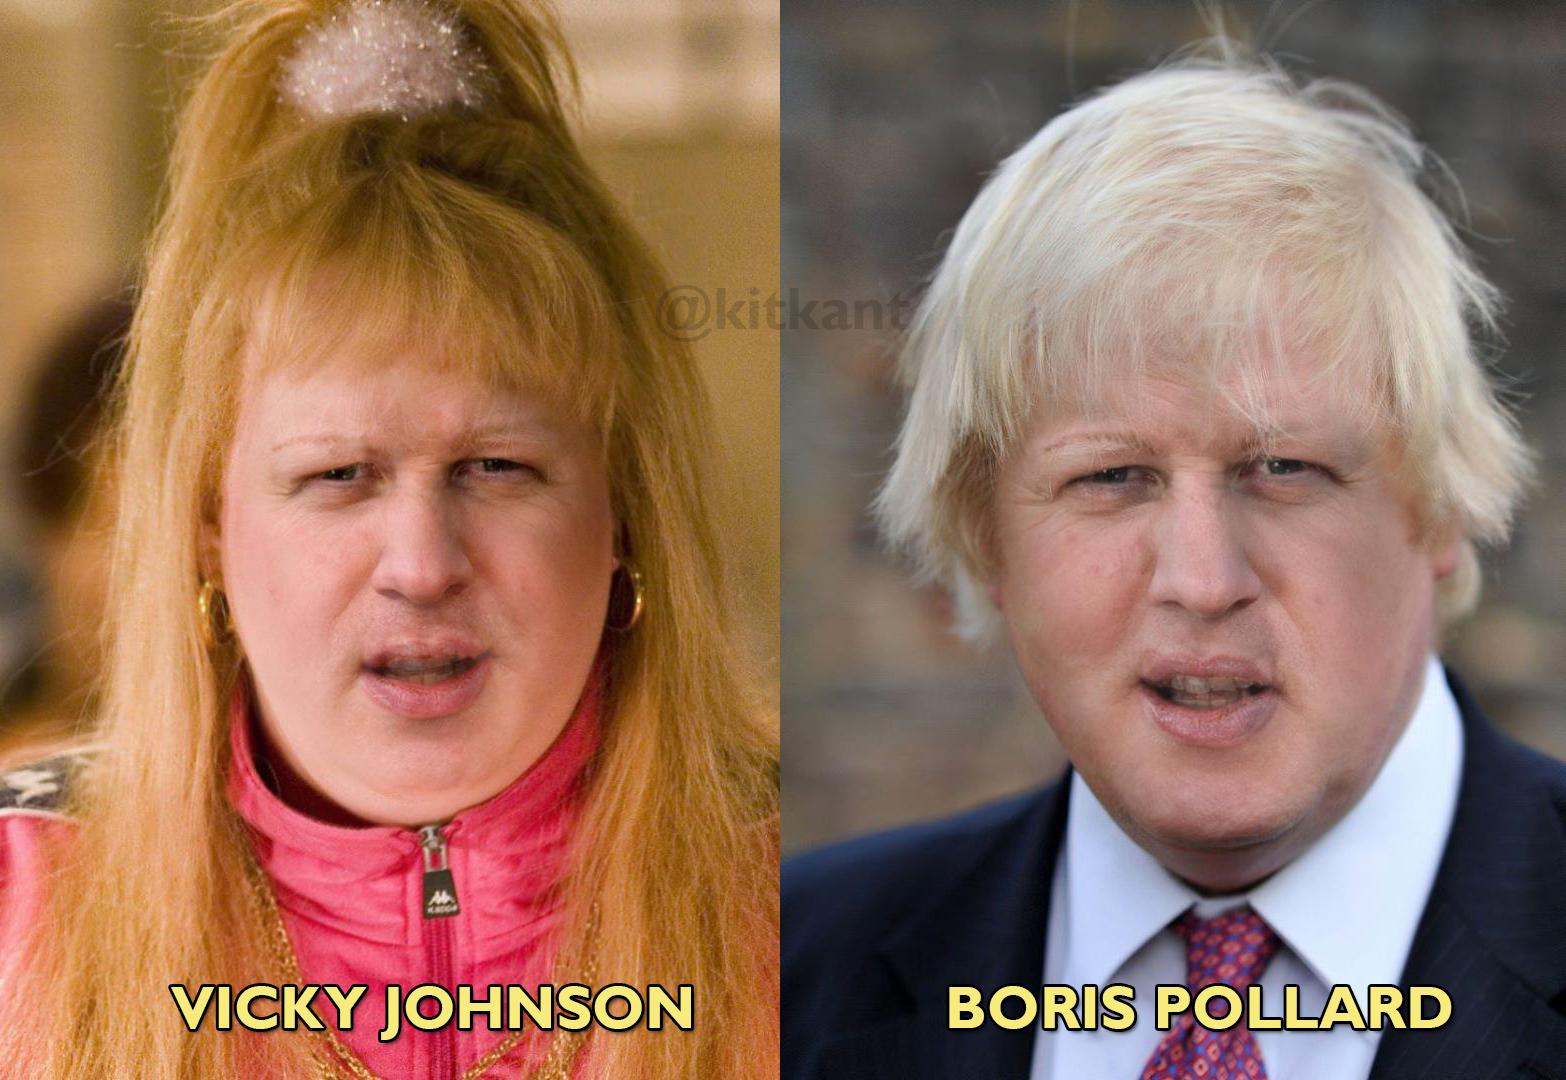 """side by side photos of """"Vicky Johnson"""" and """"Boris Pollard"""""""